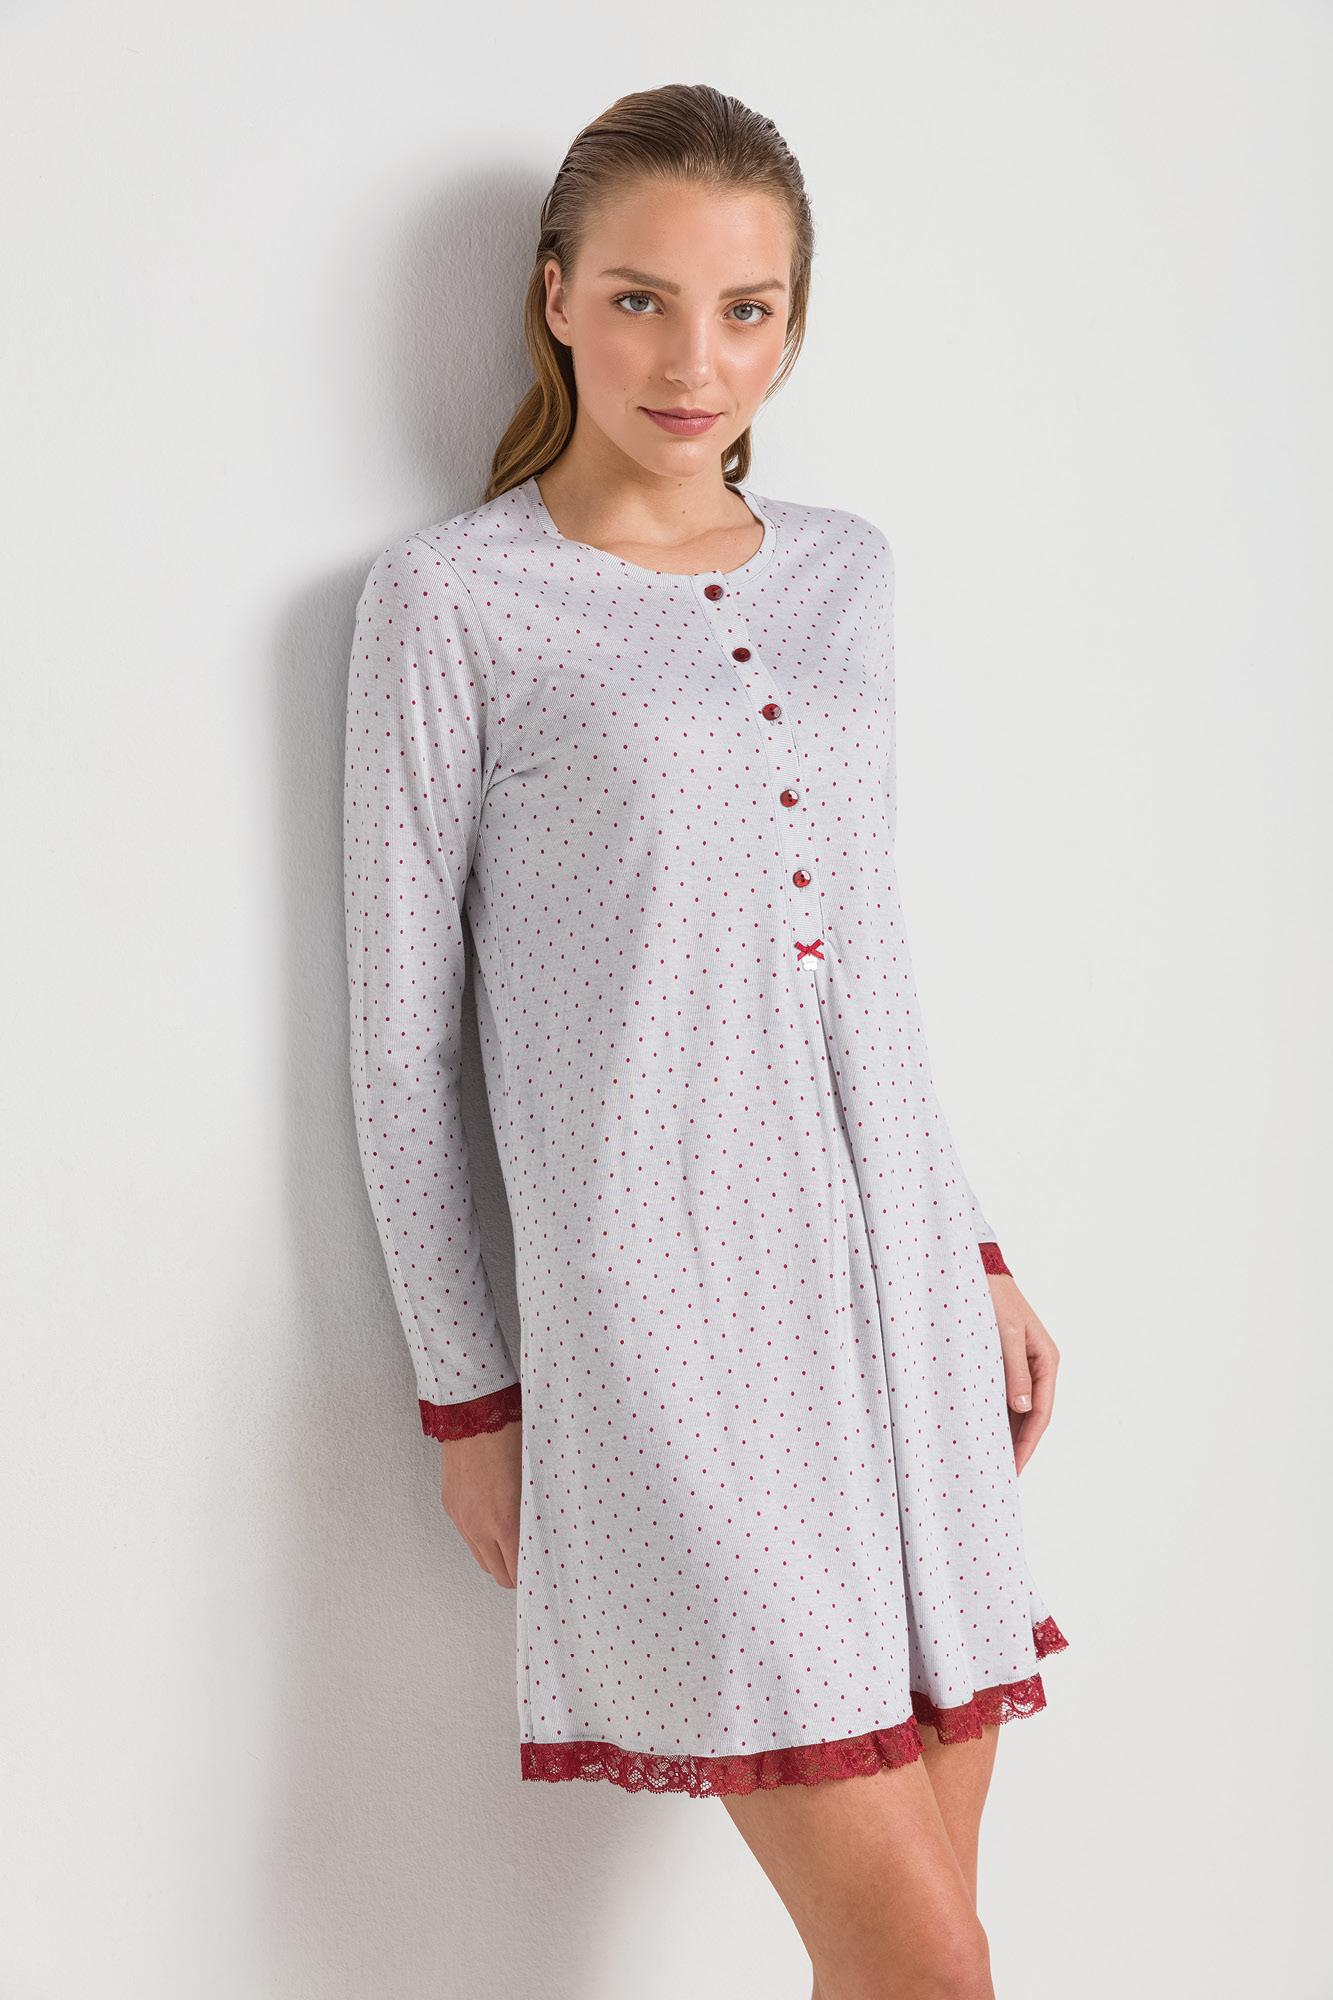 Women's Maternity Nightgown Plus Size